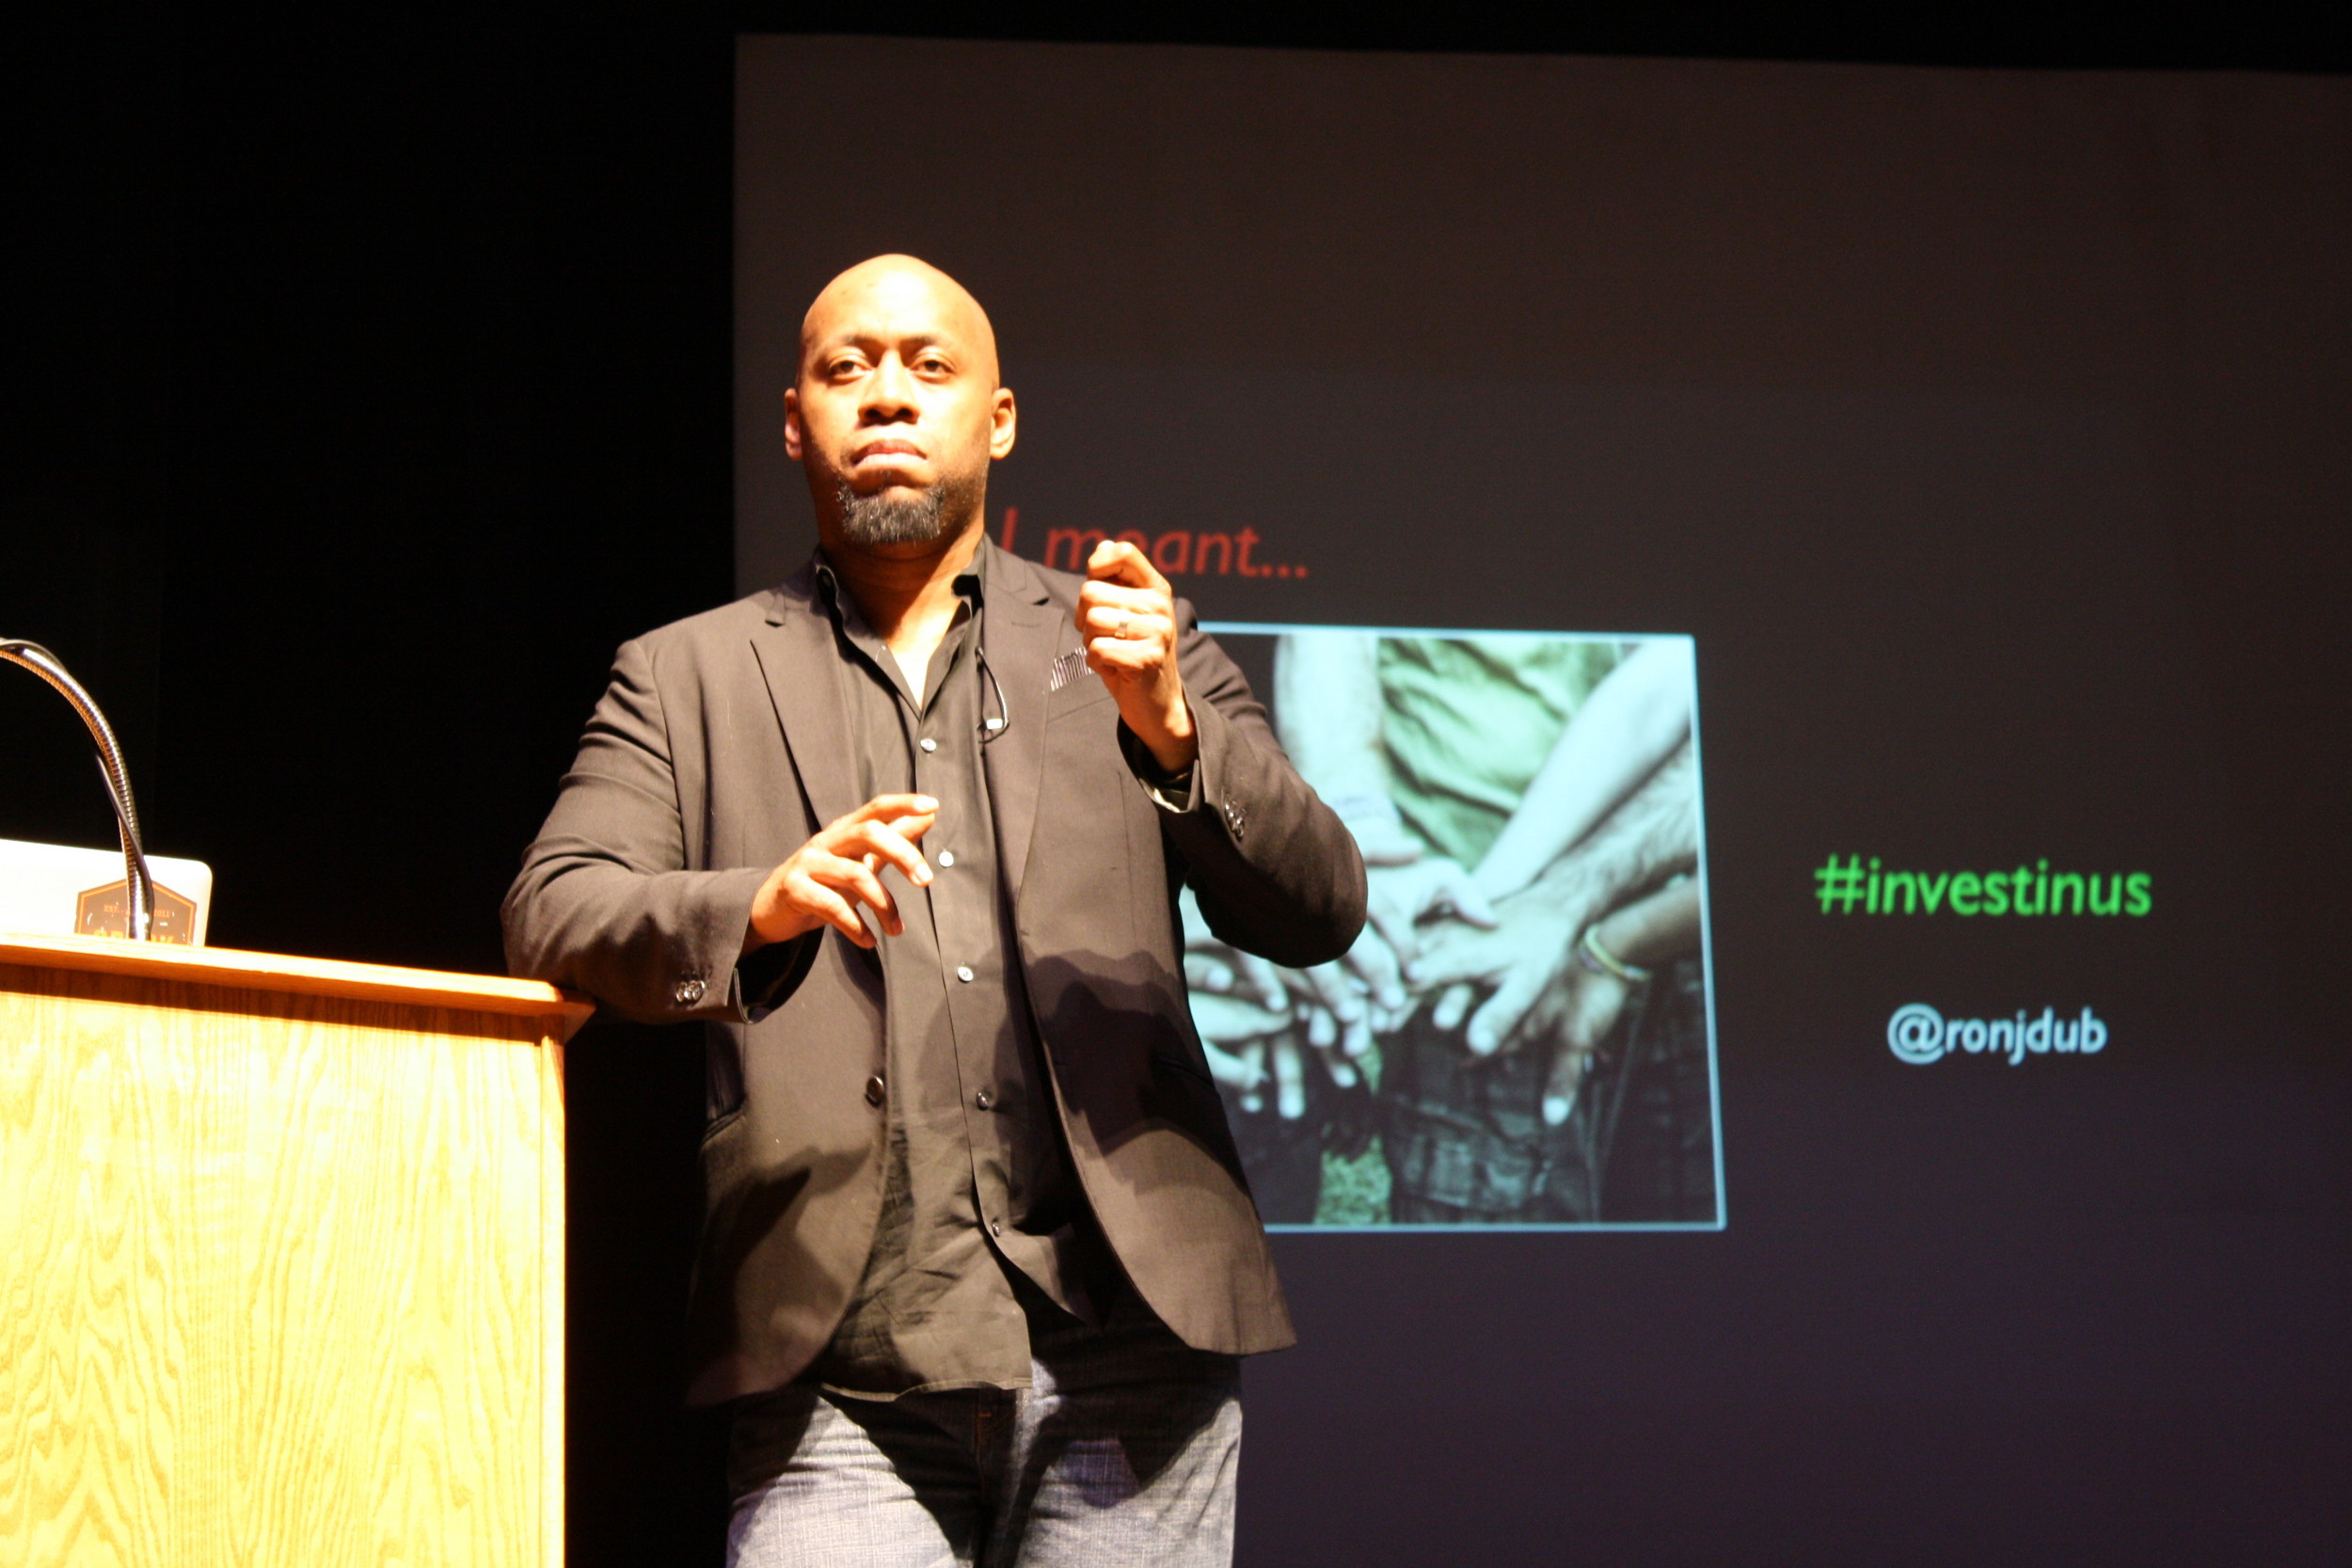 Ron J. Williams addresses One Spark crowd at the Terry Theater.